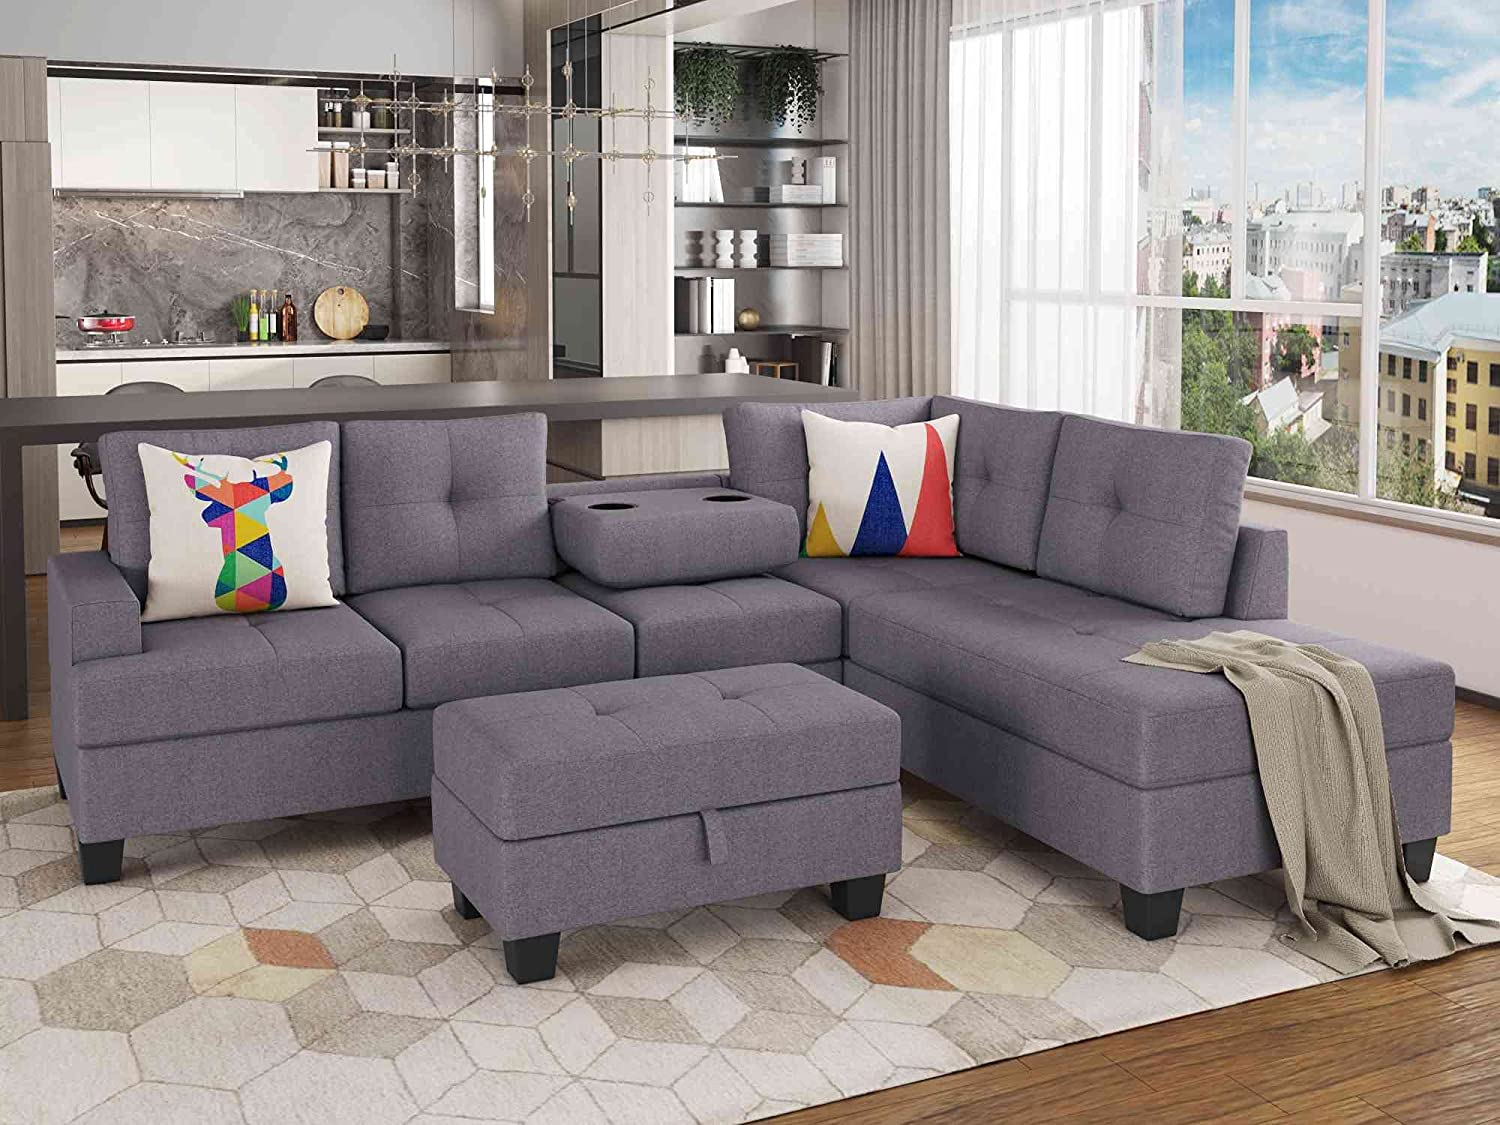 Cotoala Modern Large Sectional Set, L Shaped Microfiber Sofa Couch with with Reversible Chaise Lounge Storage Ottoman and Cup Holders for Living Room Furniture-Gray